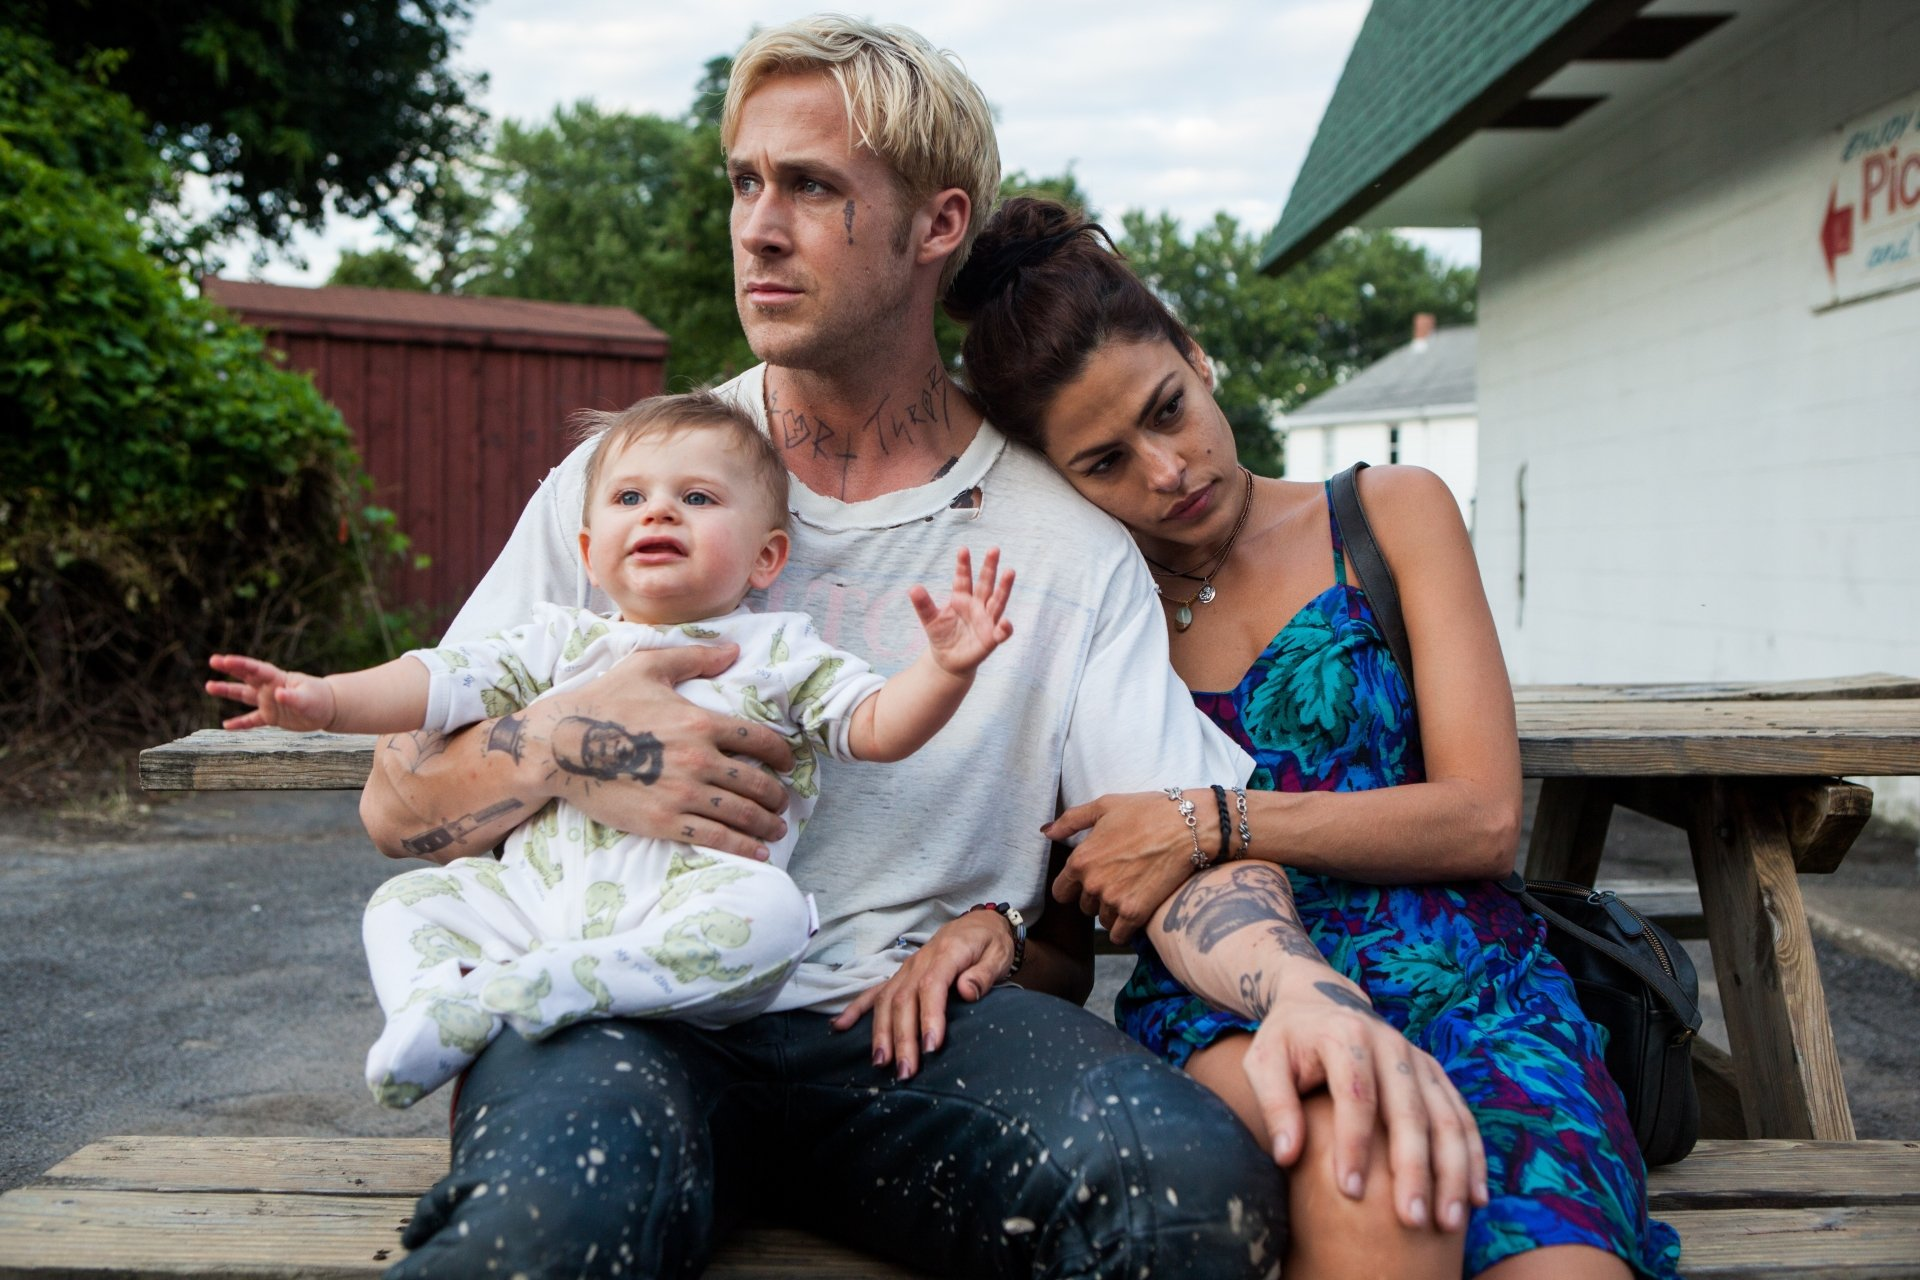 Movie - The Place Beyond the Pines  Ryan Gosling Luke (The Place Beyond the Pines) Eva Mendes Romina (The Place Beyond The Pines) Wallpaper